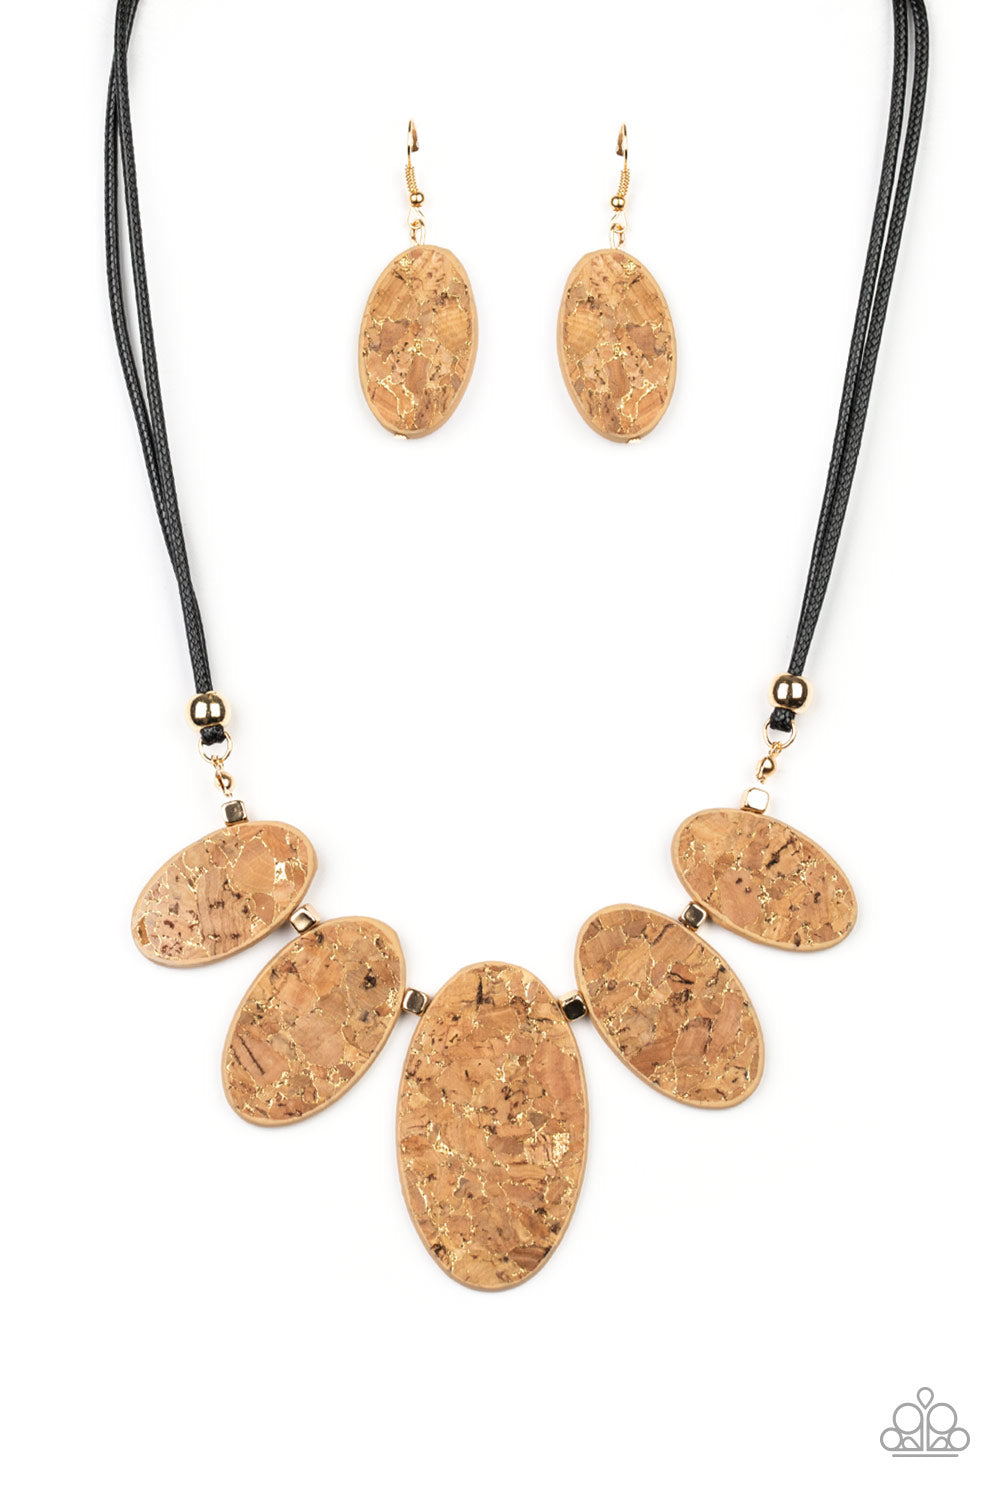 Natures Finest - Gold Paparazzi Accessories Cork Necklace